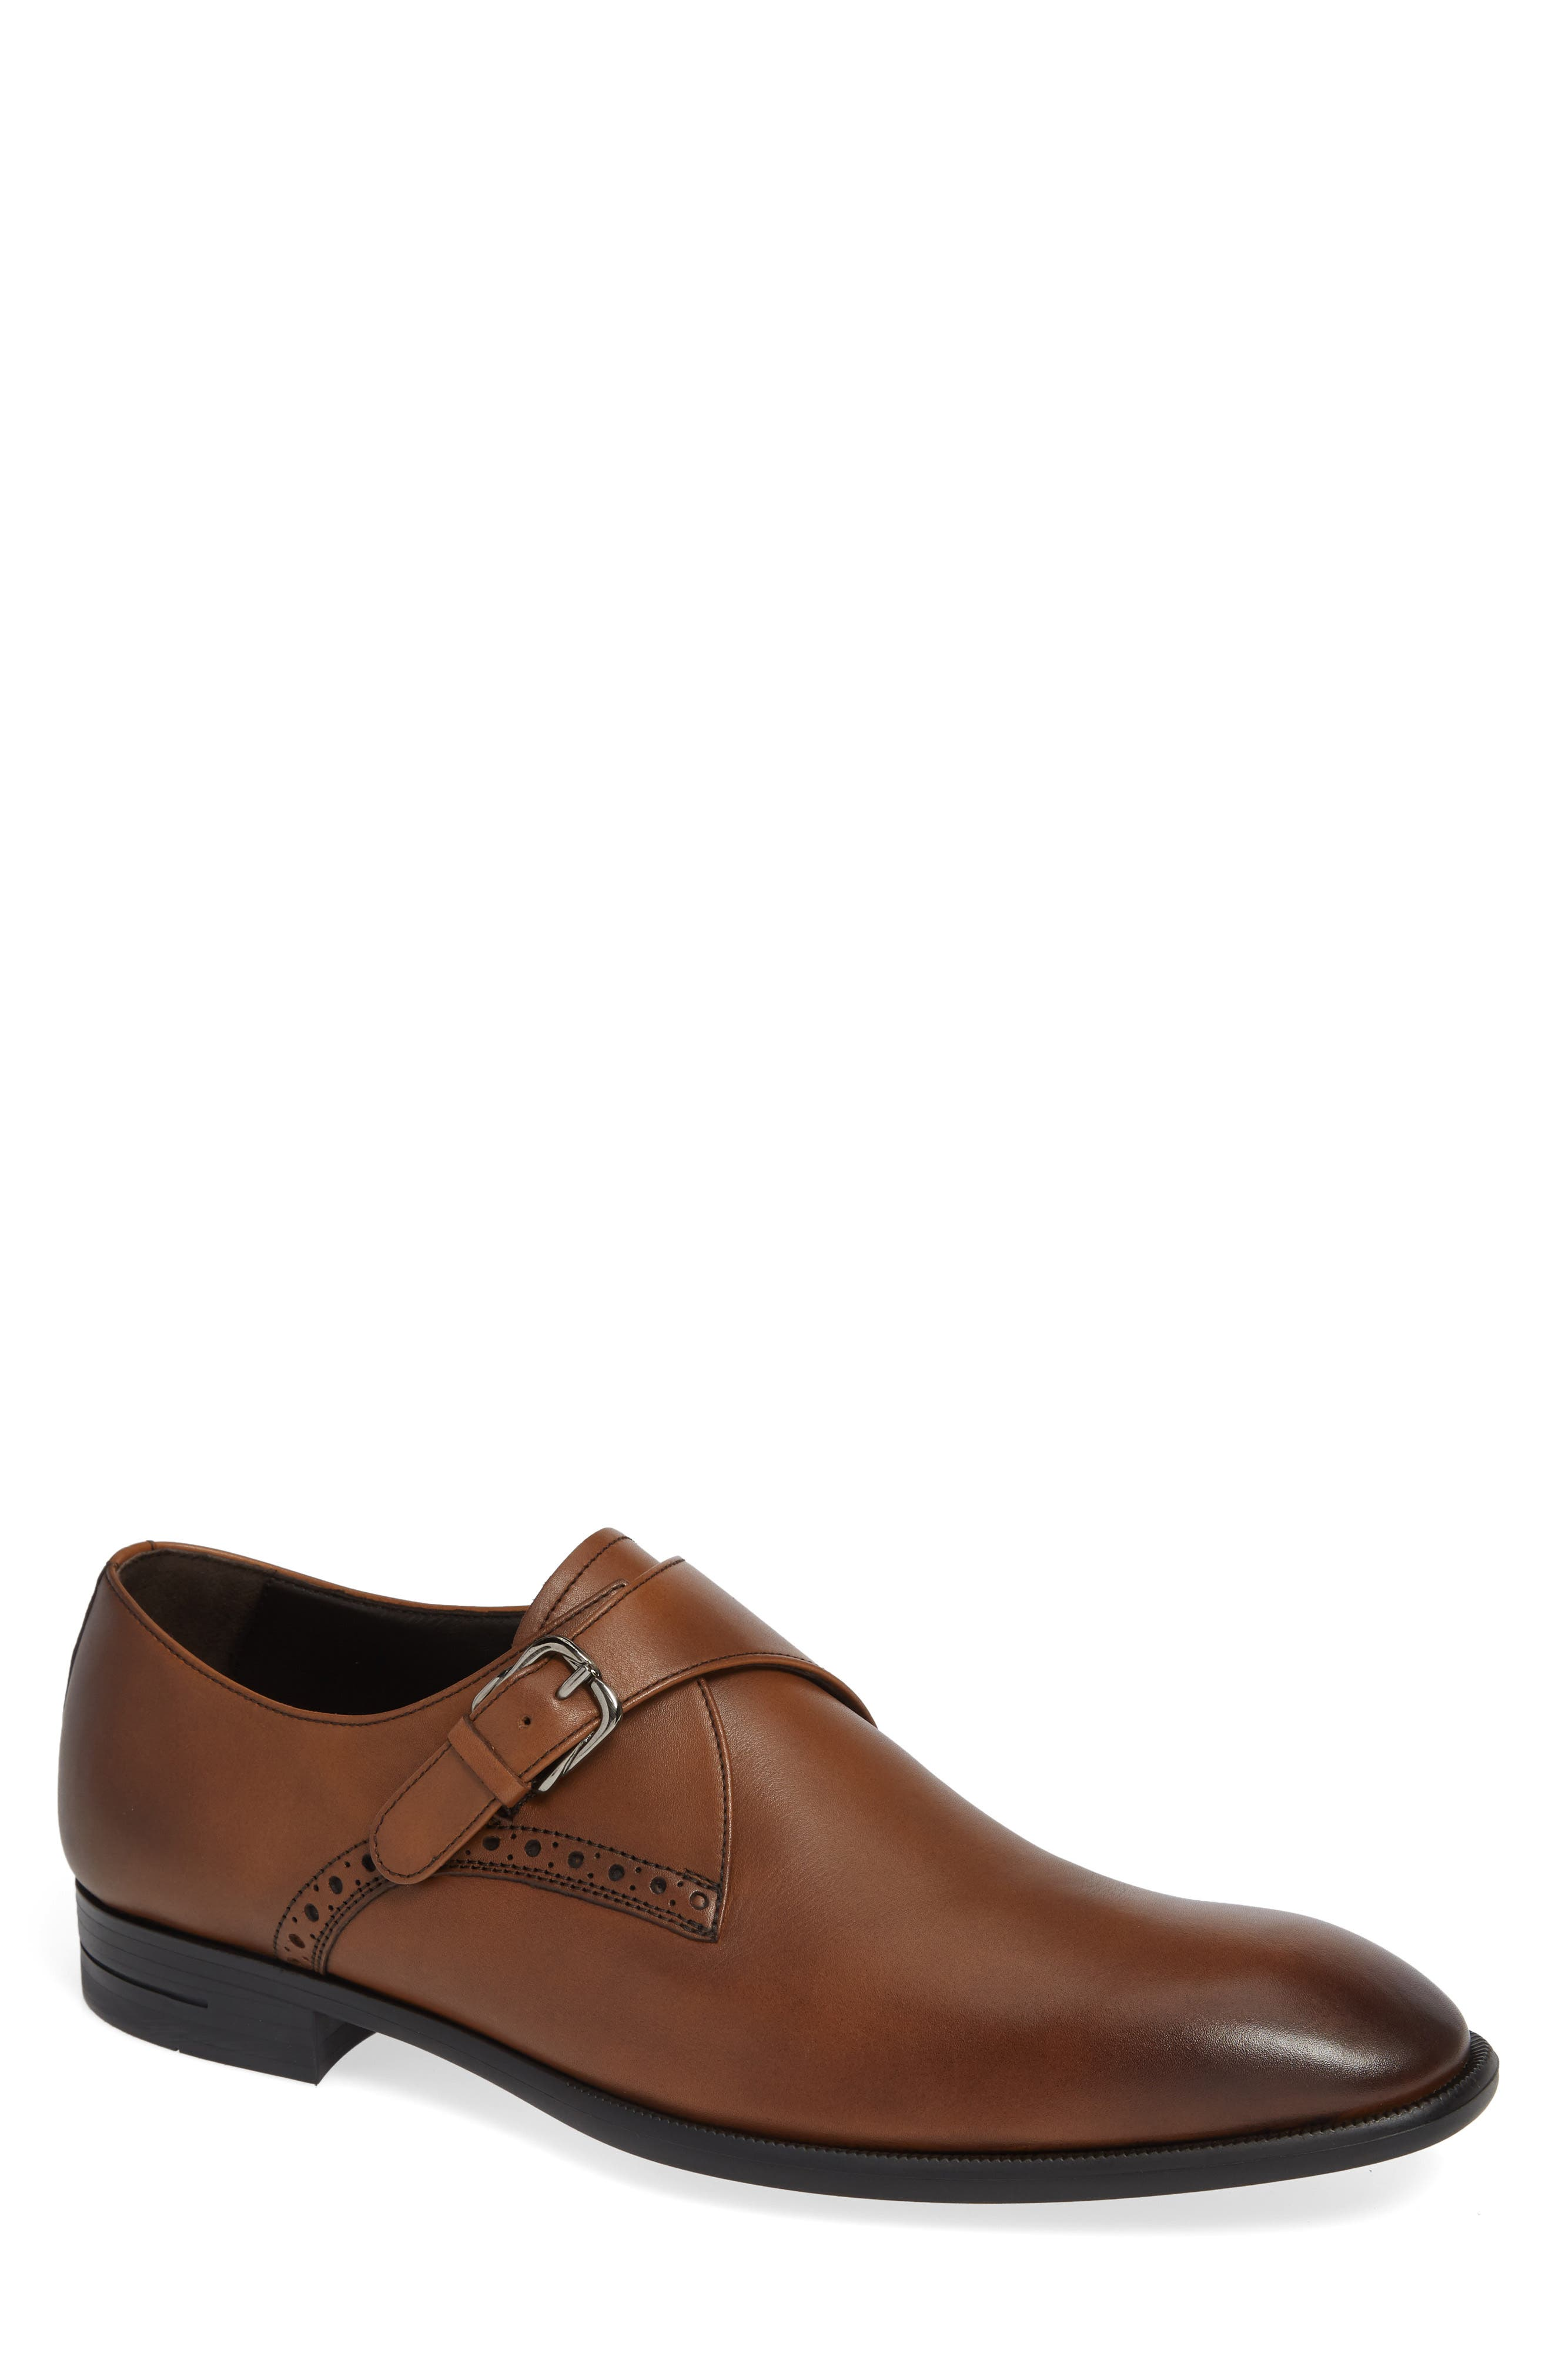 Flex Monk Strap Burnished Leather Shoes in Vicuna Brown